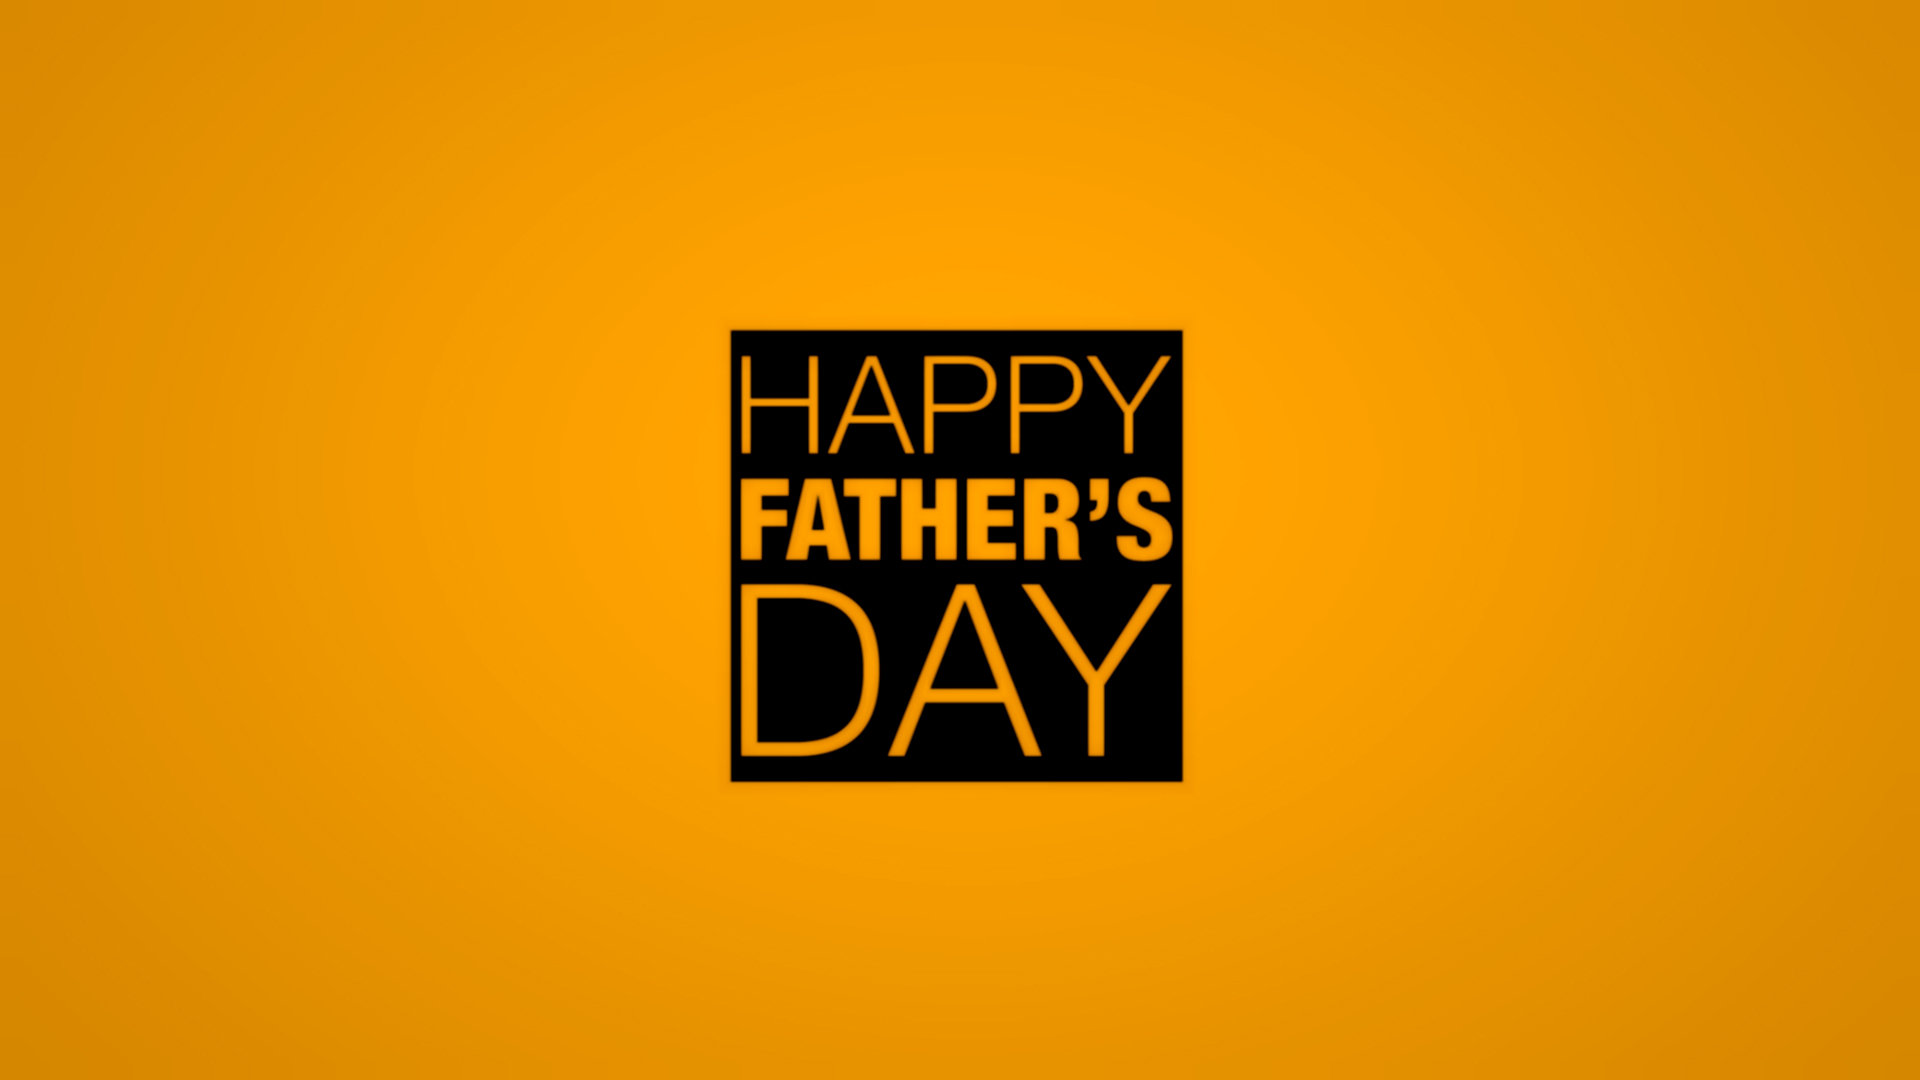 Fathers Day Background HD